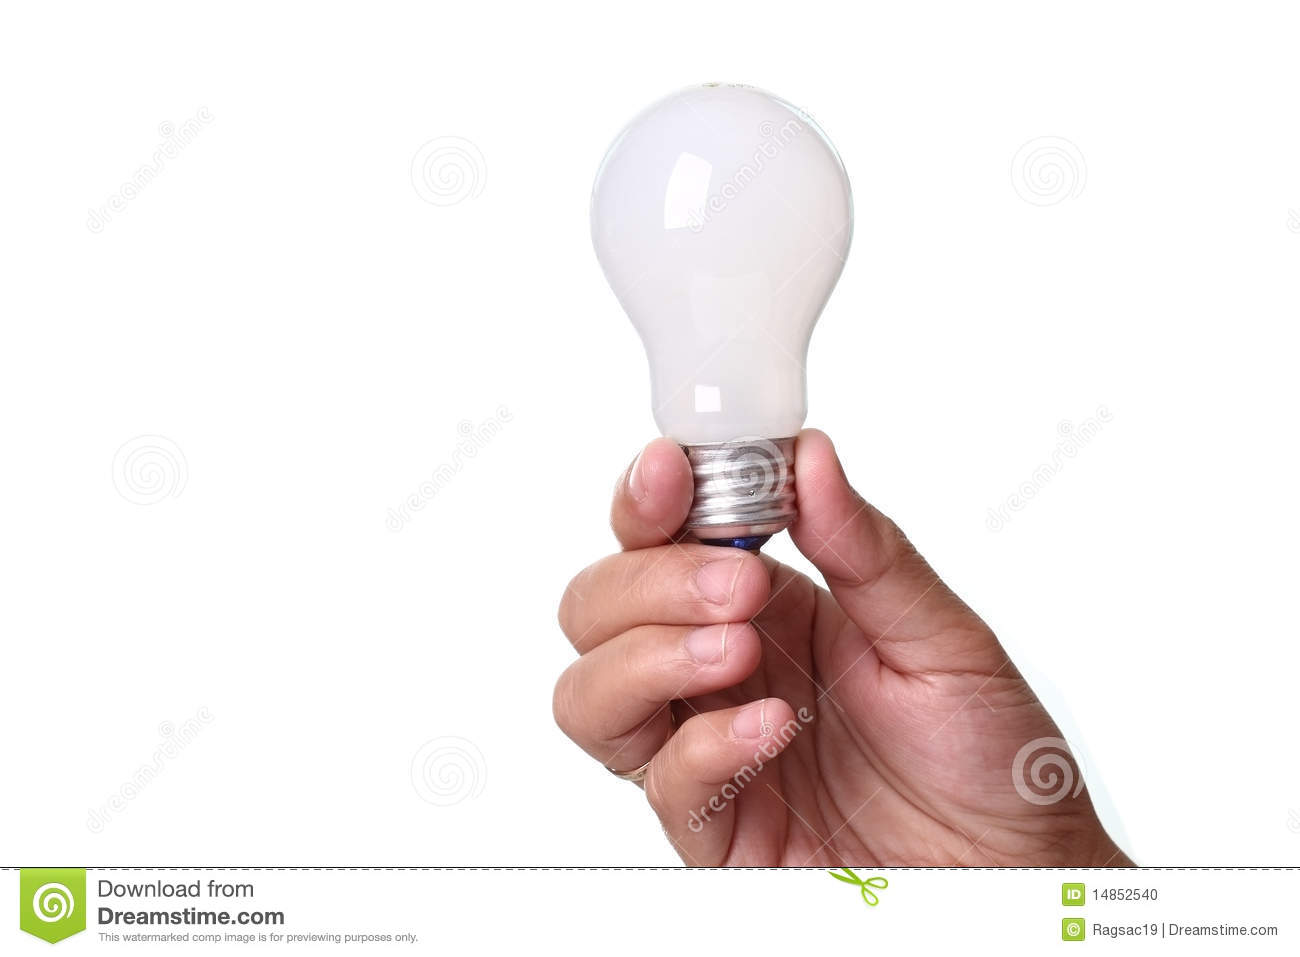 Lightbulb in a hand